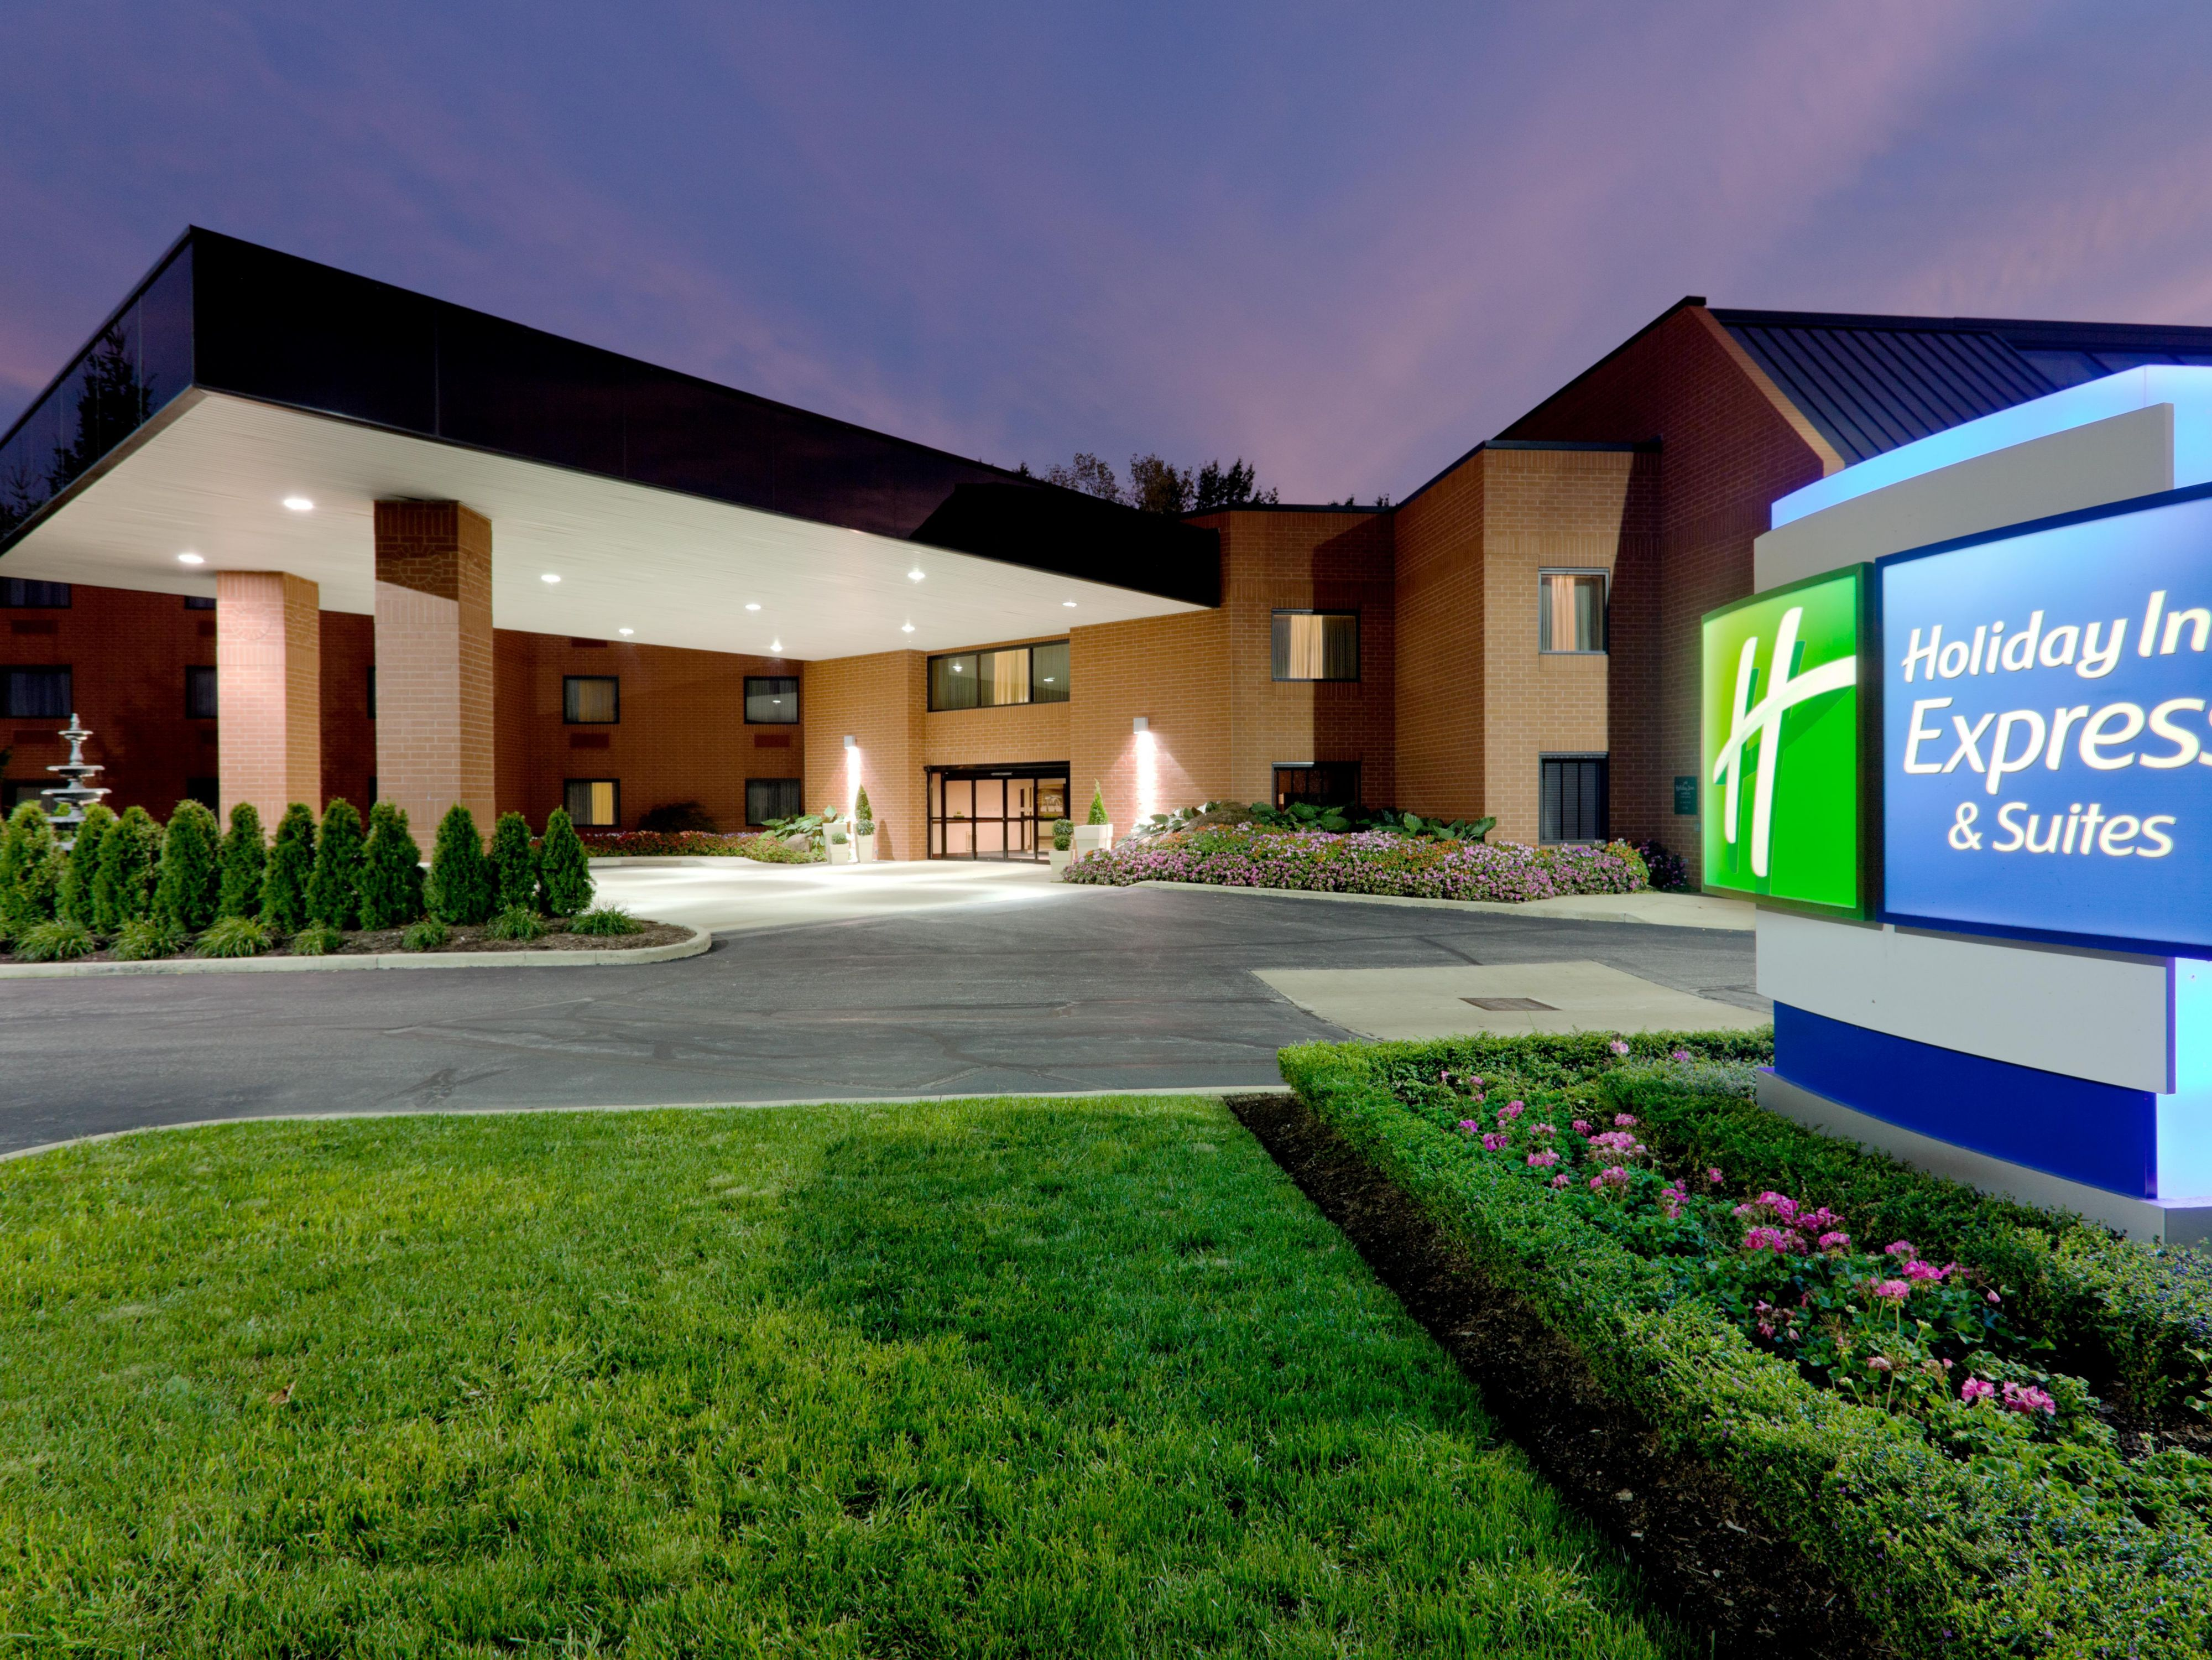 Holiday Inn Express Suites Mentor Lamalfa Conf Centre Hotel By Ihg